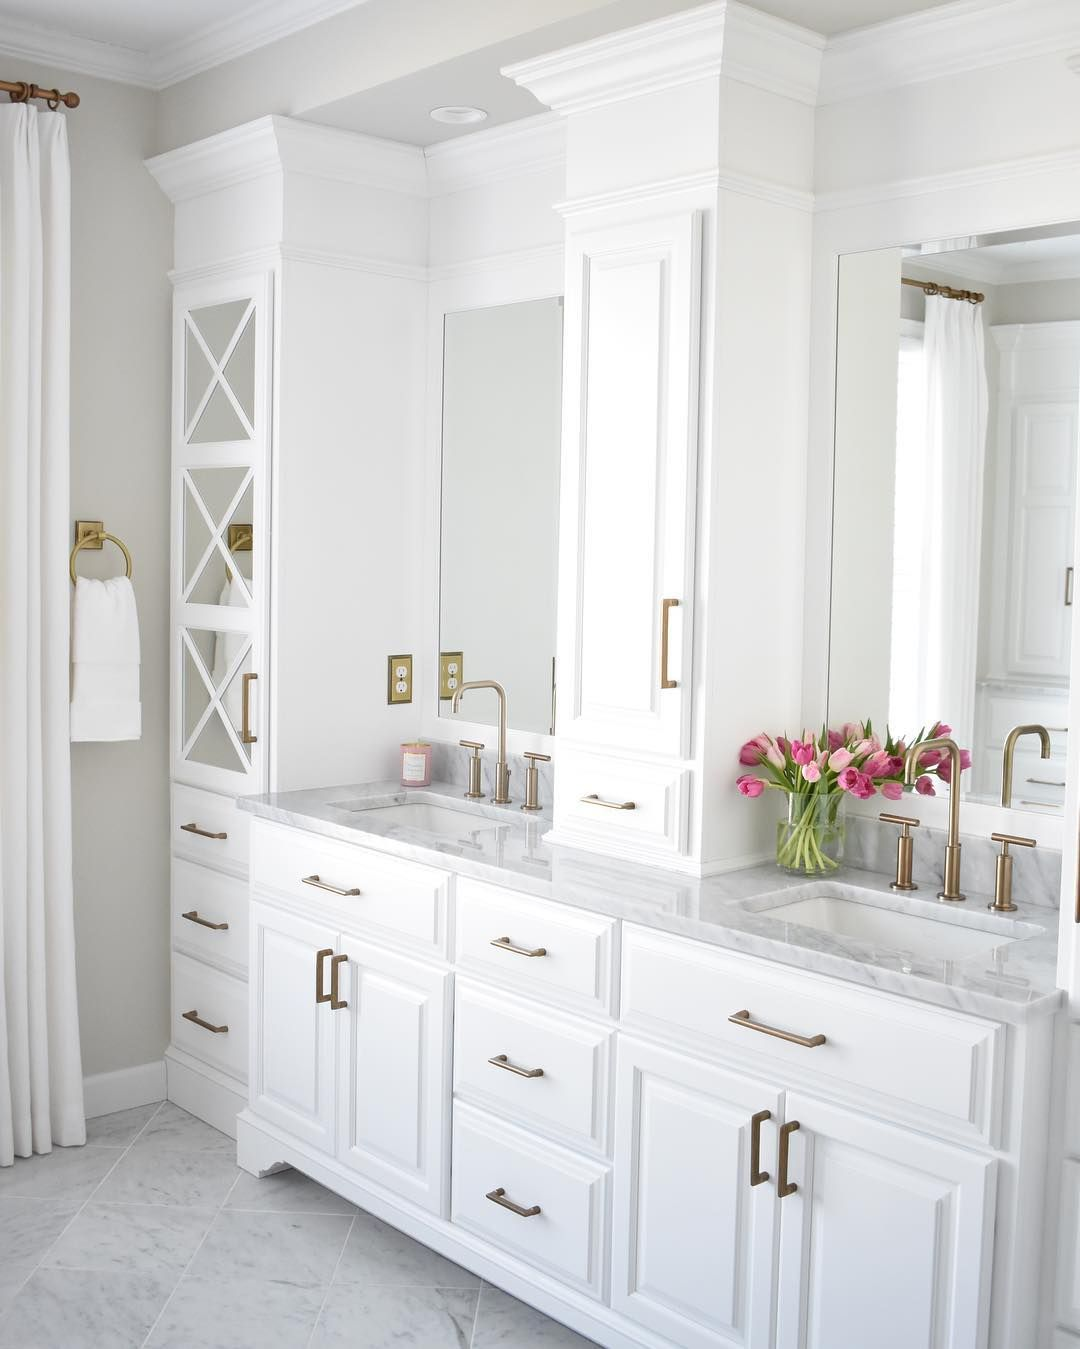 """Kate Abt Design on Instagram: """"Just can't resist - bright white, marble and brass in the master bathroom at the Pebble Beach project. . . . . . #kateabtdesign #design…"""""""